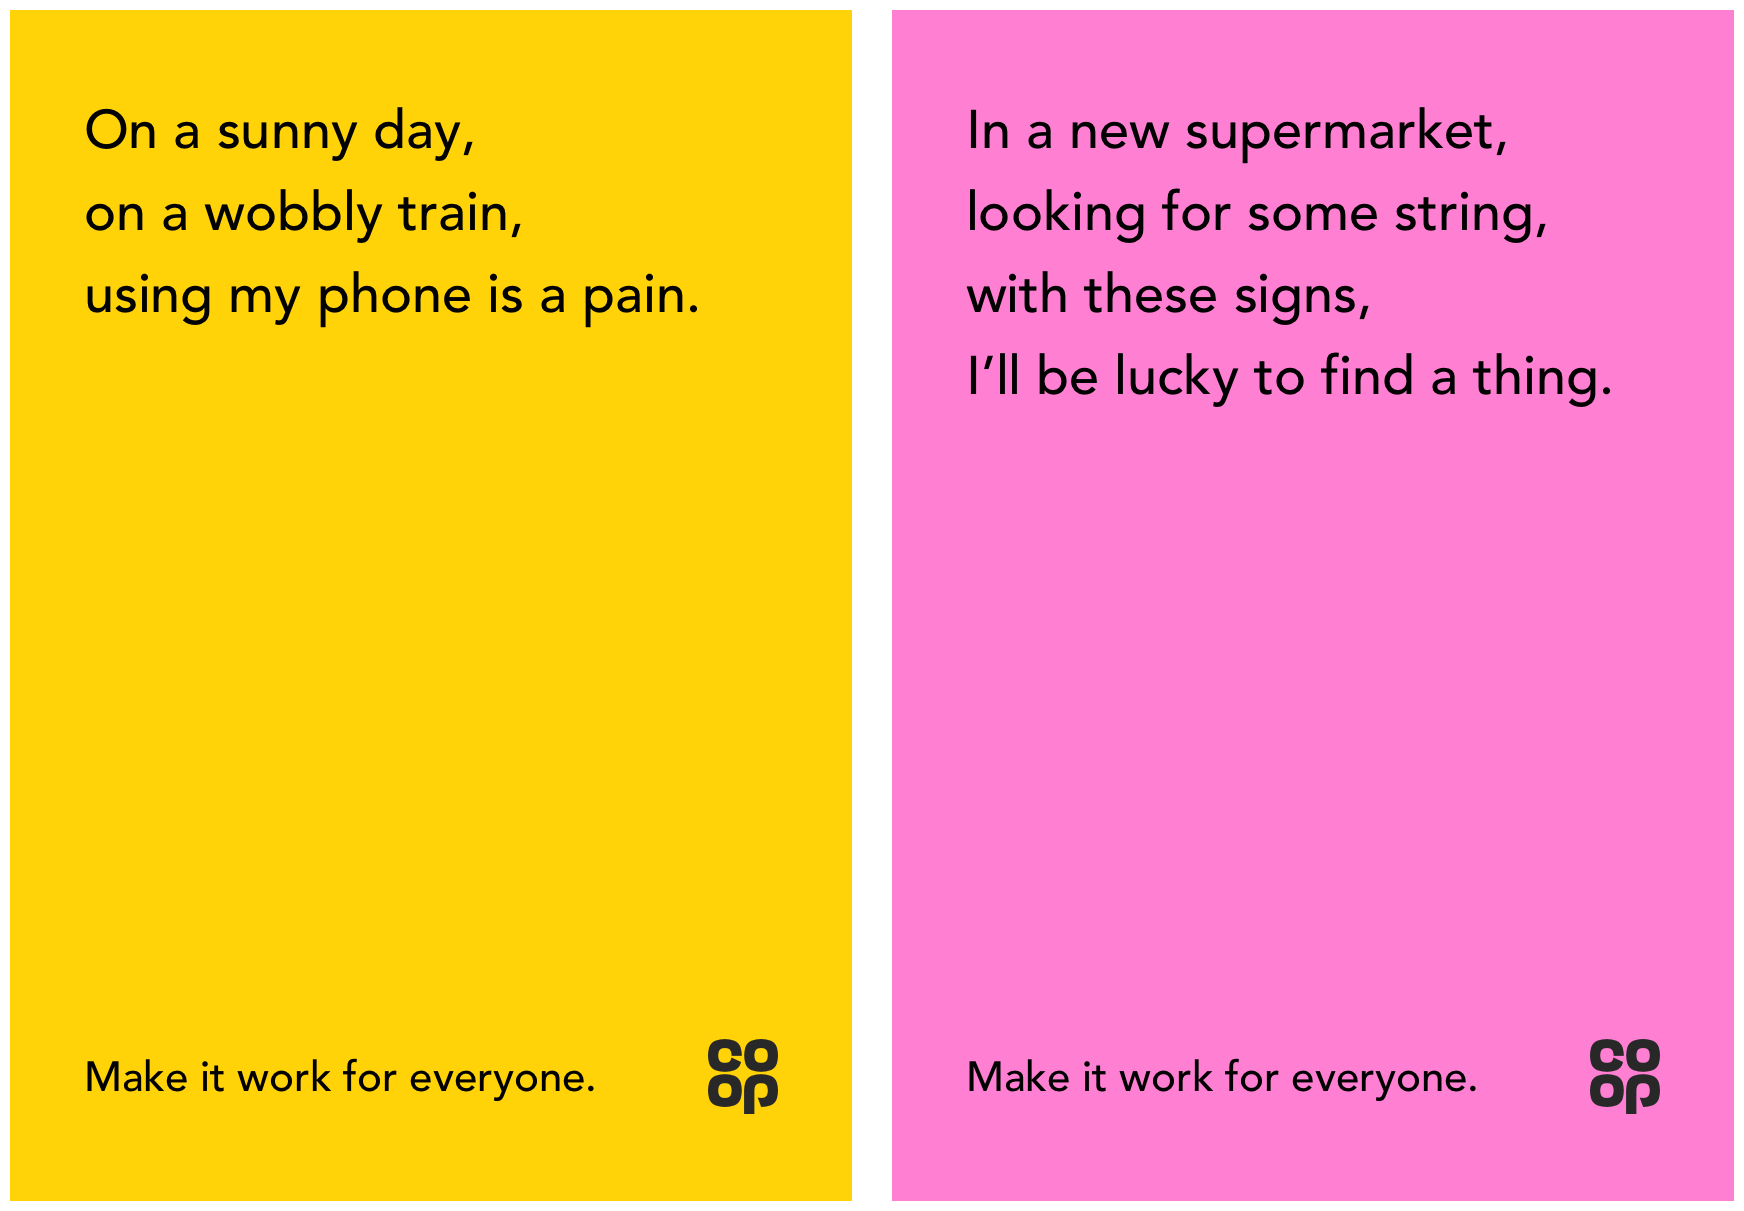 yellow poster on the left hand side that says: on a sunny day on a wobbly train using my phone is a pain. make it work for everyone. pink poster on the right hand side says: in a new supermarket looking for some strong with these signs i'll be lucky to find a thing. make it work for everyone.